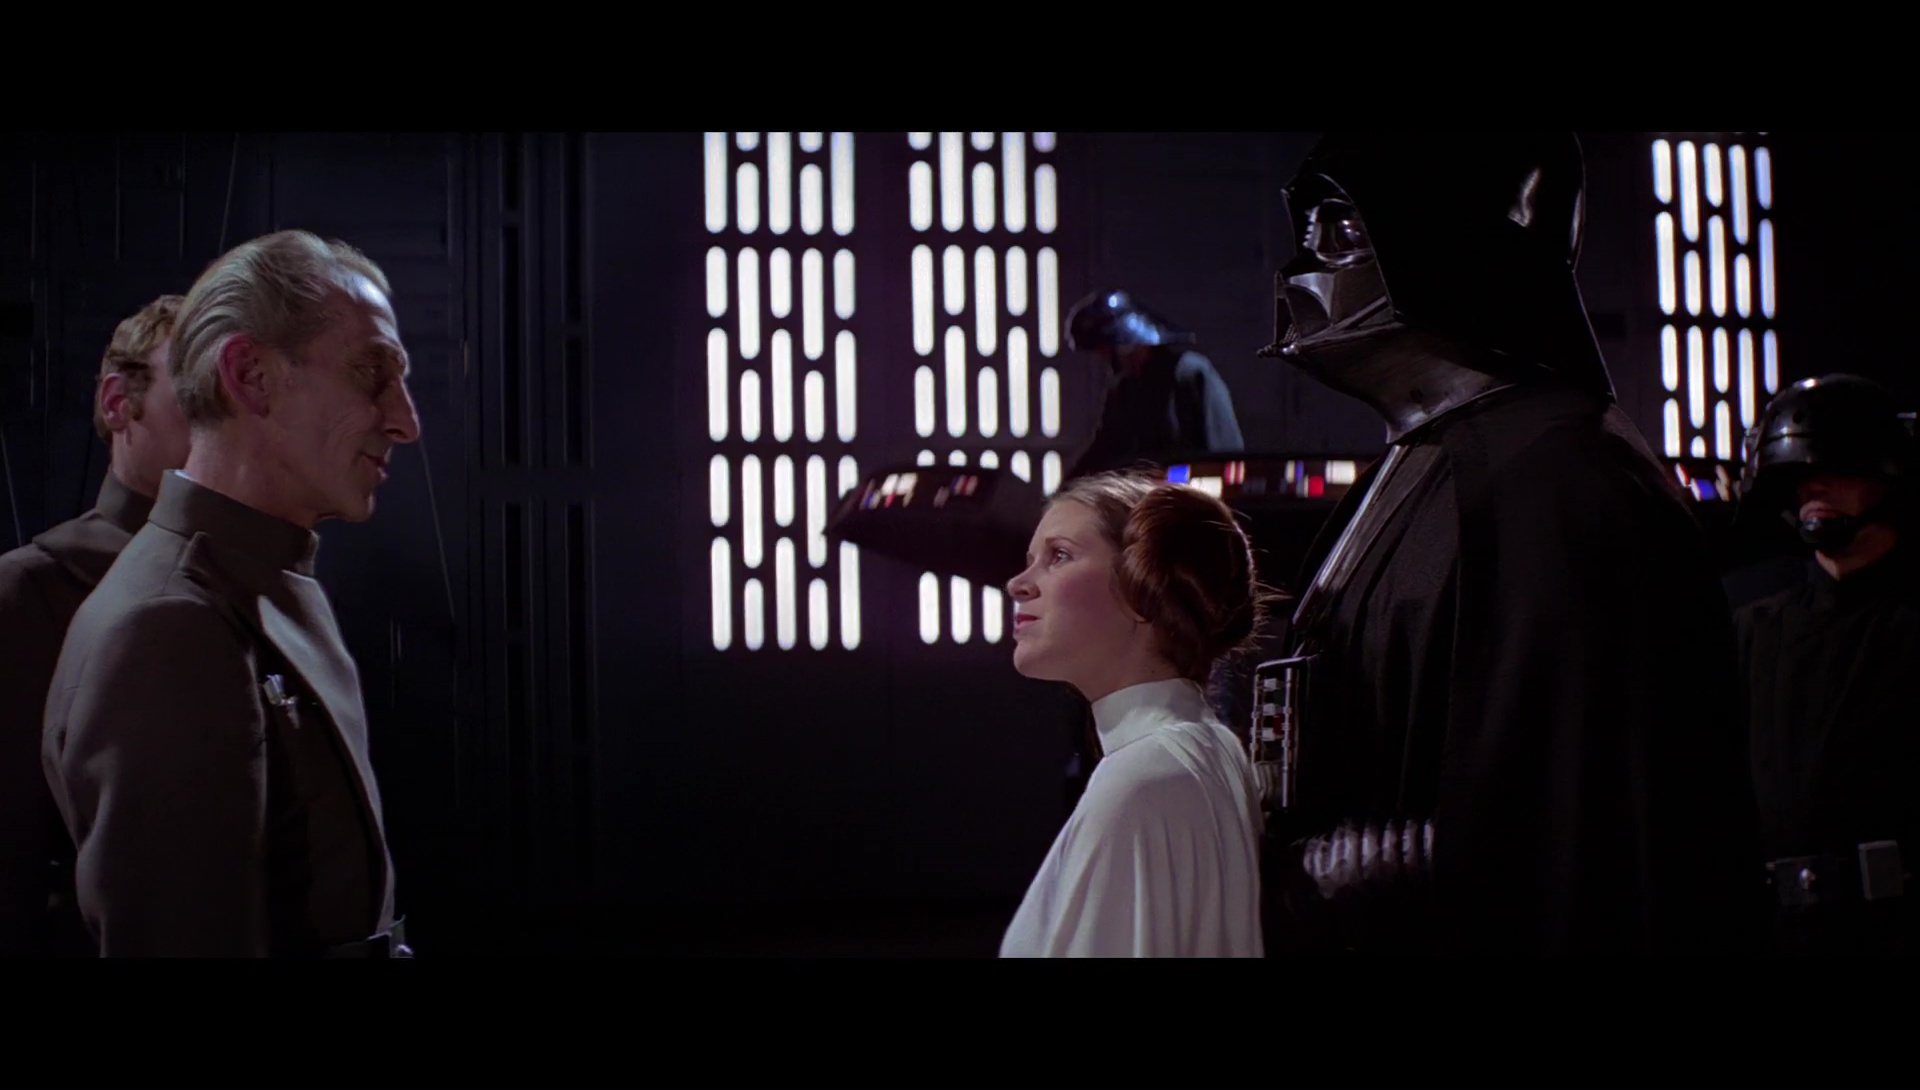 Star Wars Episodio IV 1080p Lat-Cast-Ing 5.1 (1977)